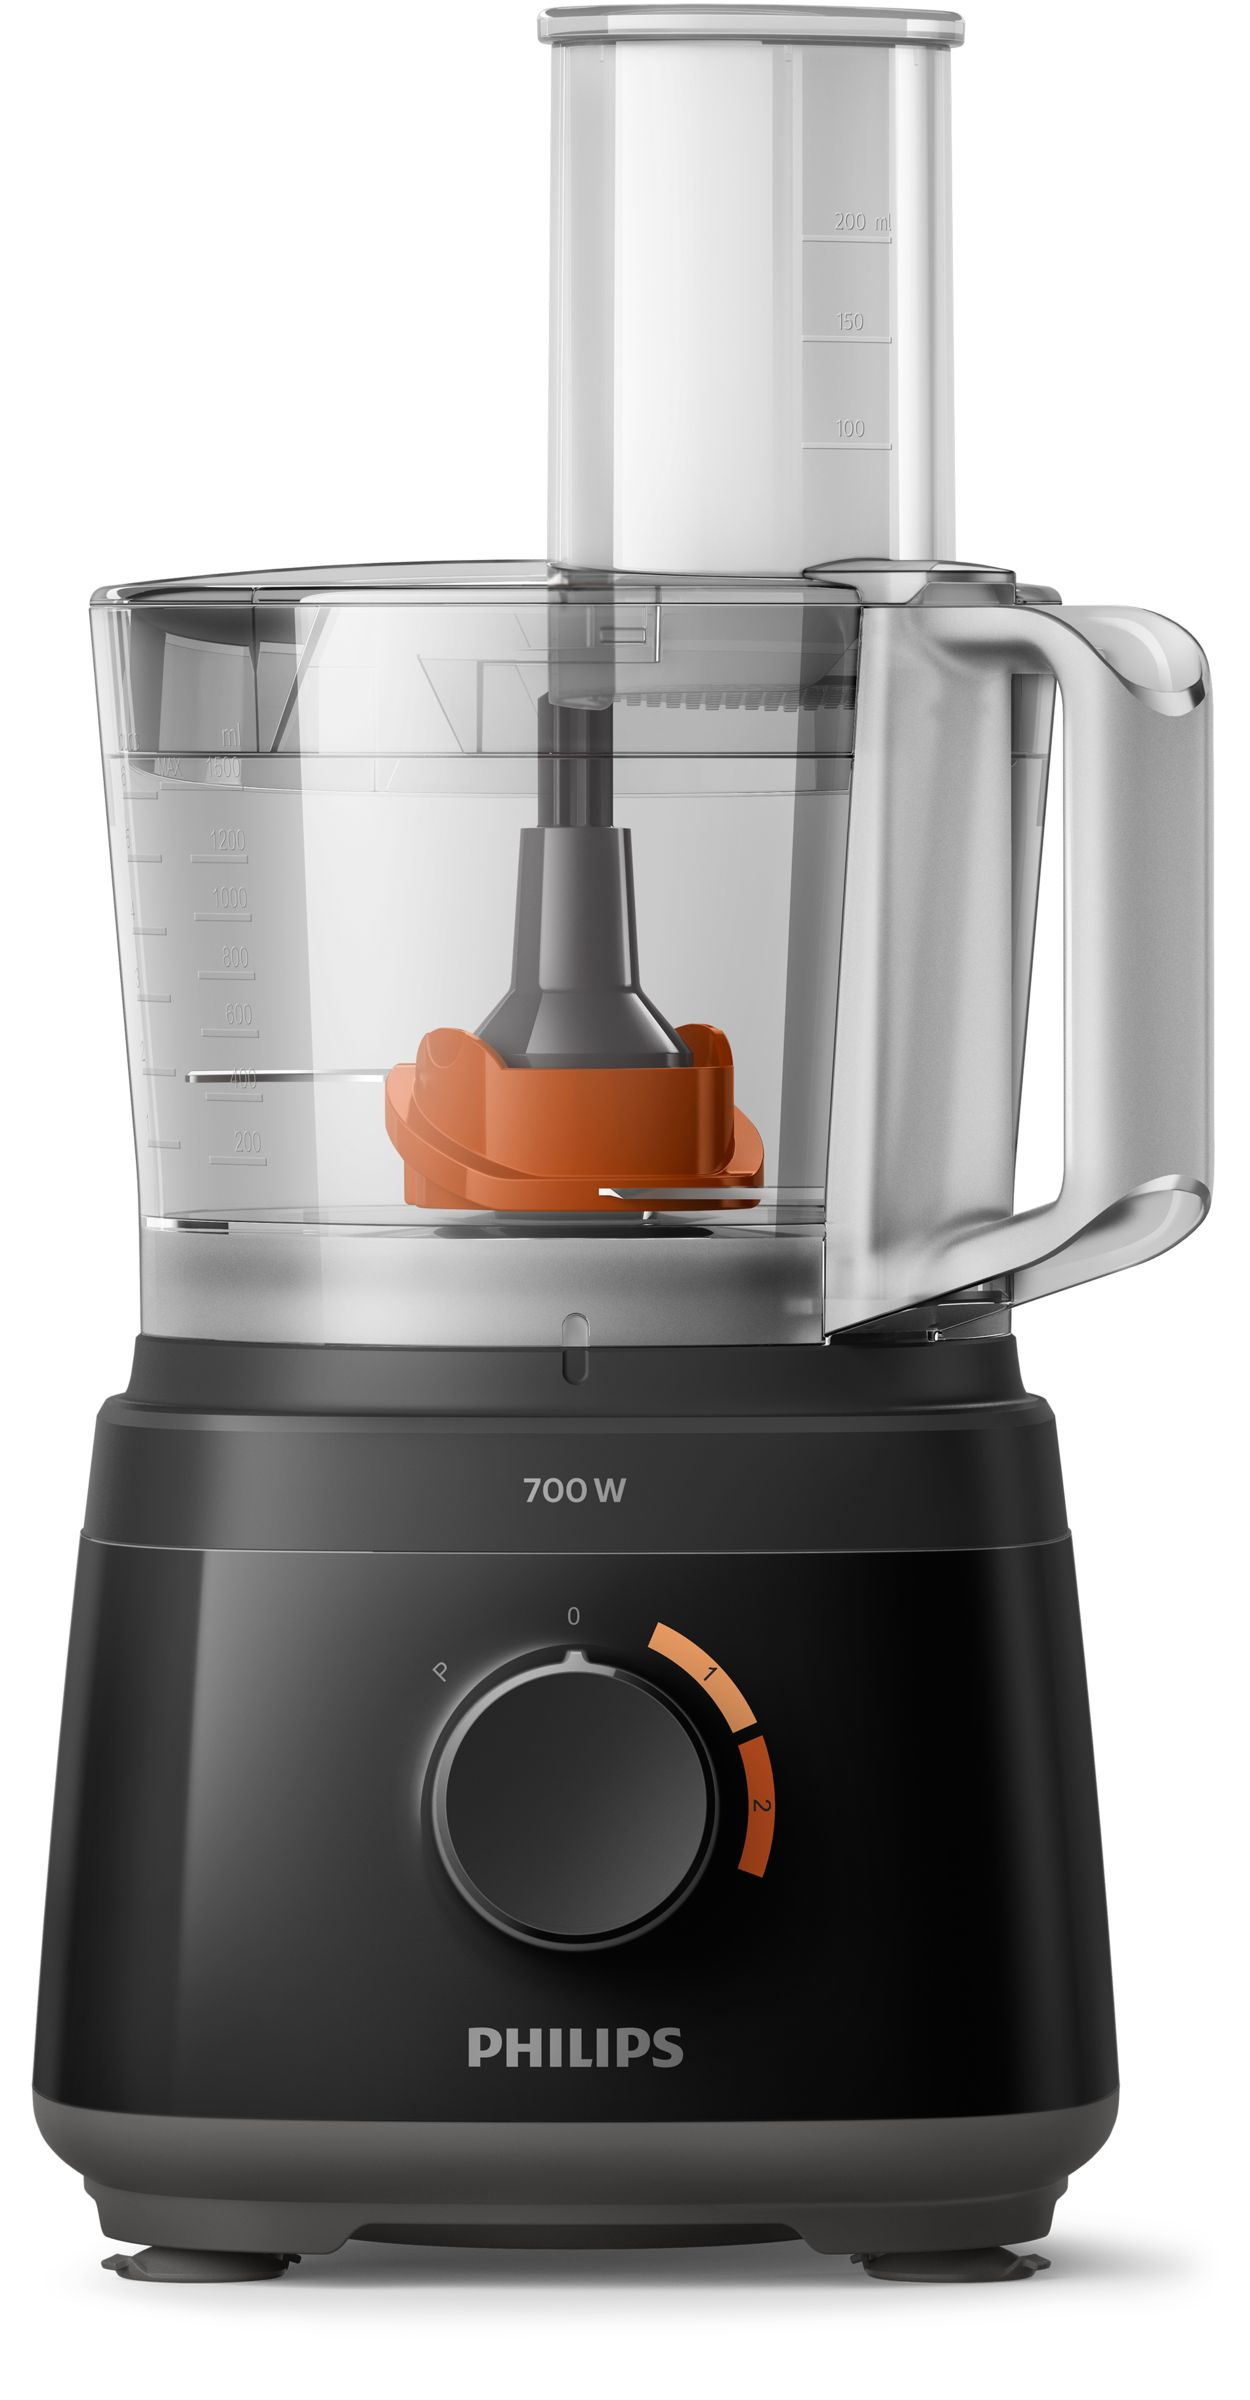 Image result for philips compact food processor